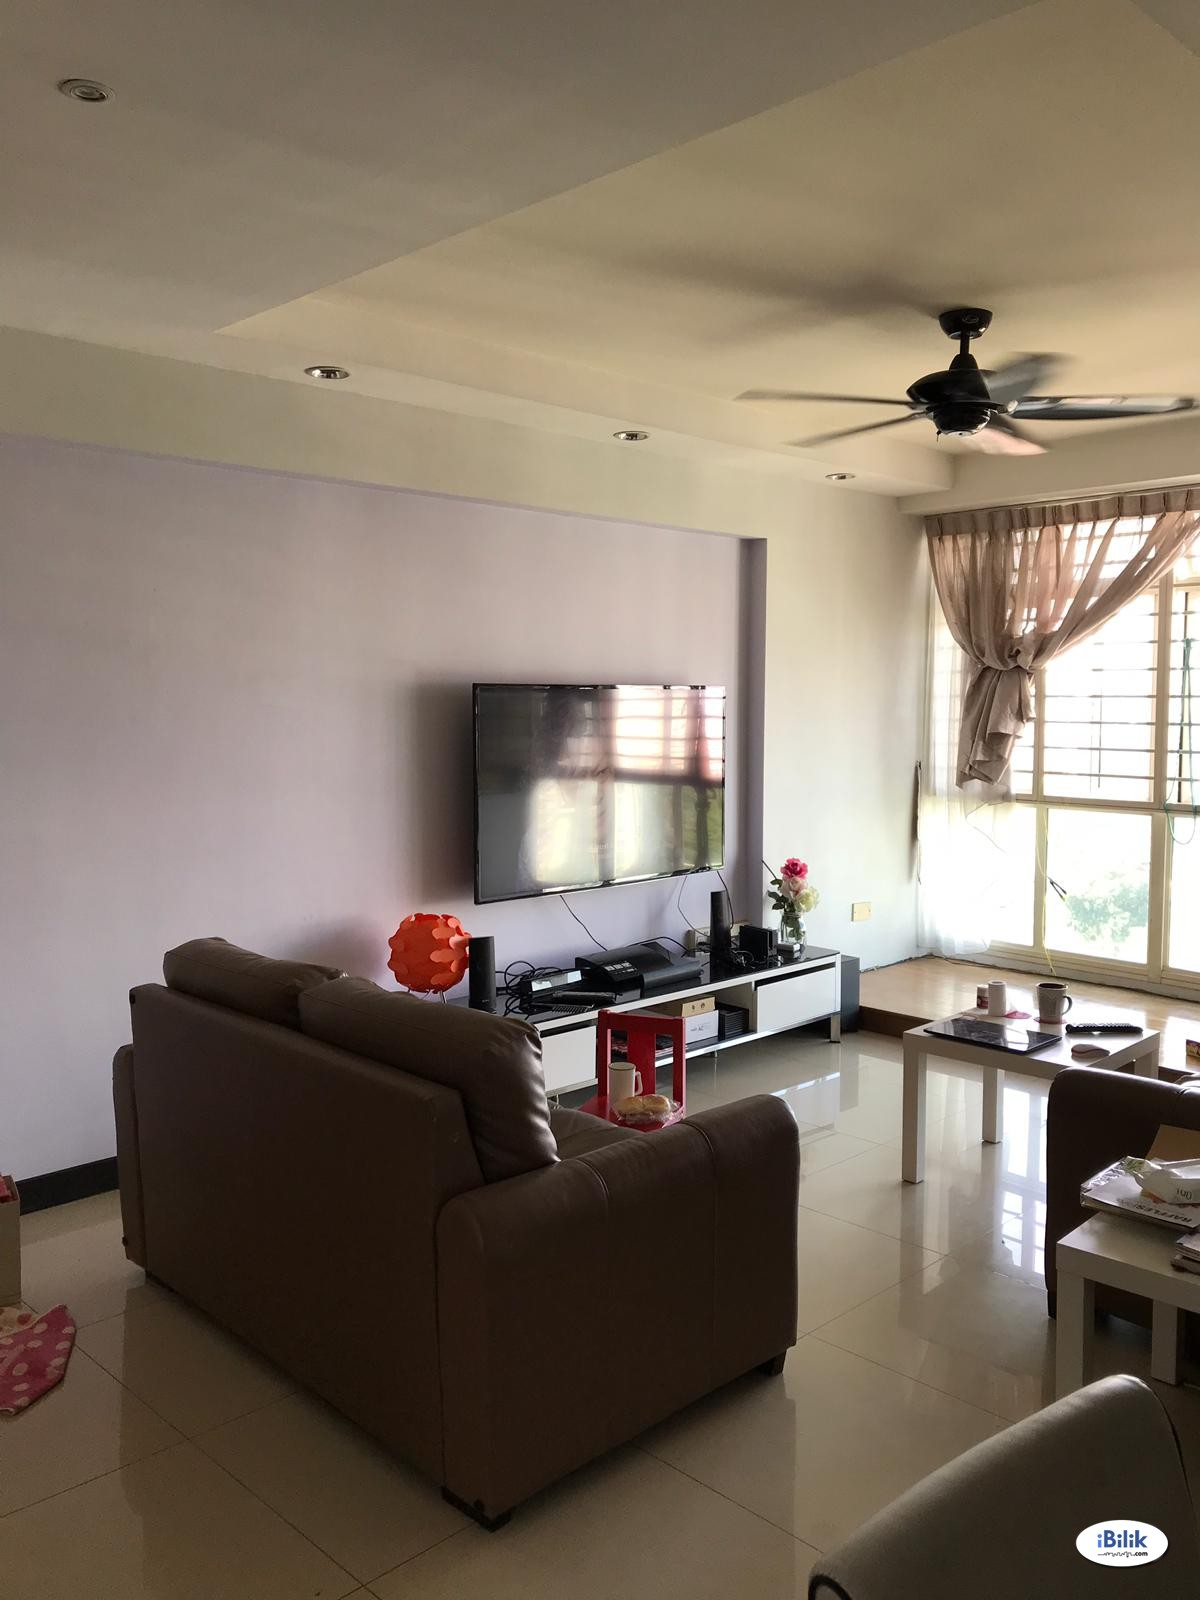 Single Room fully furnish air condition (No landlord)